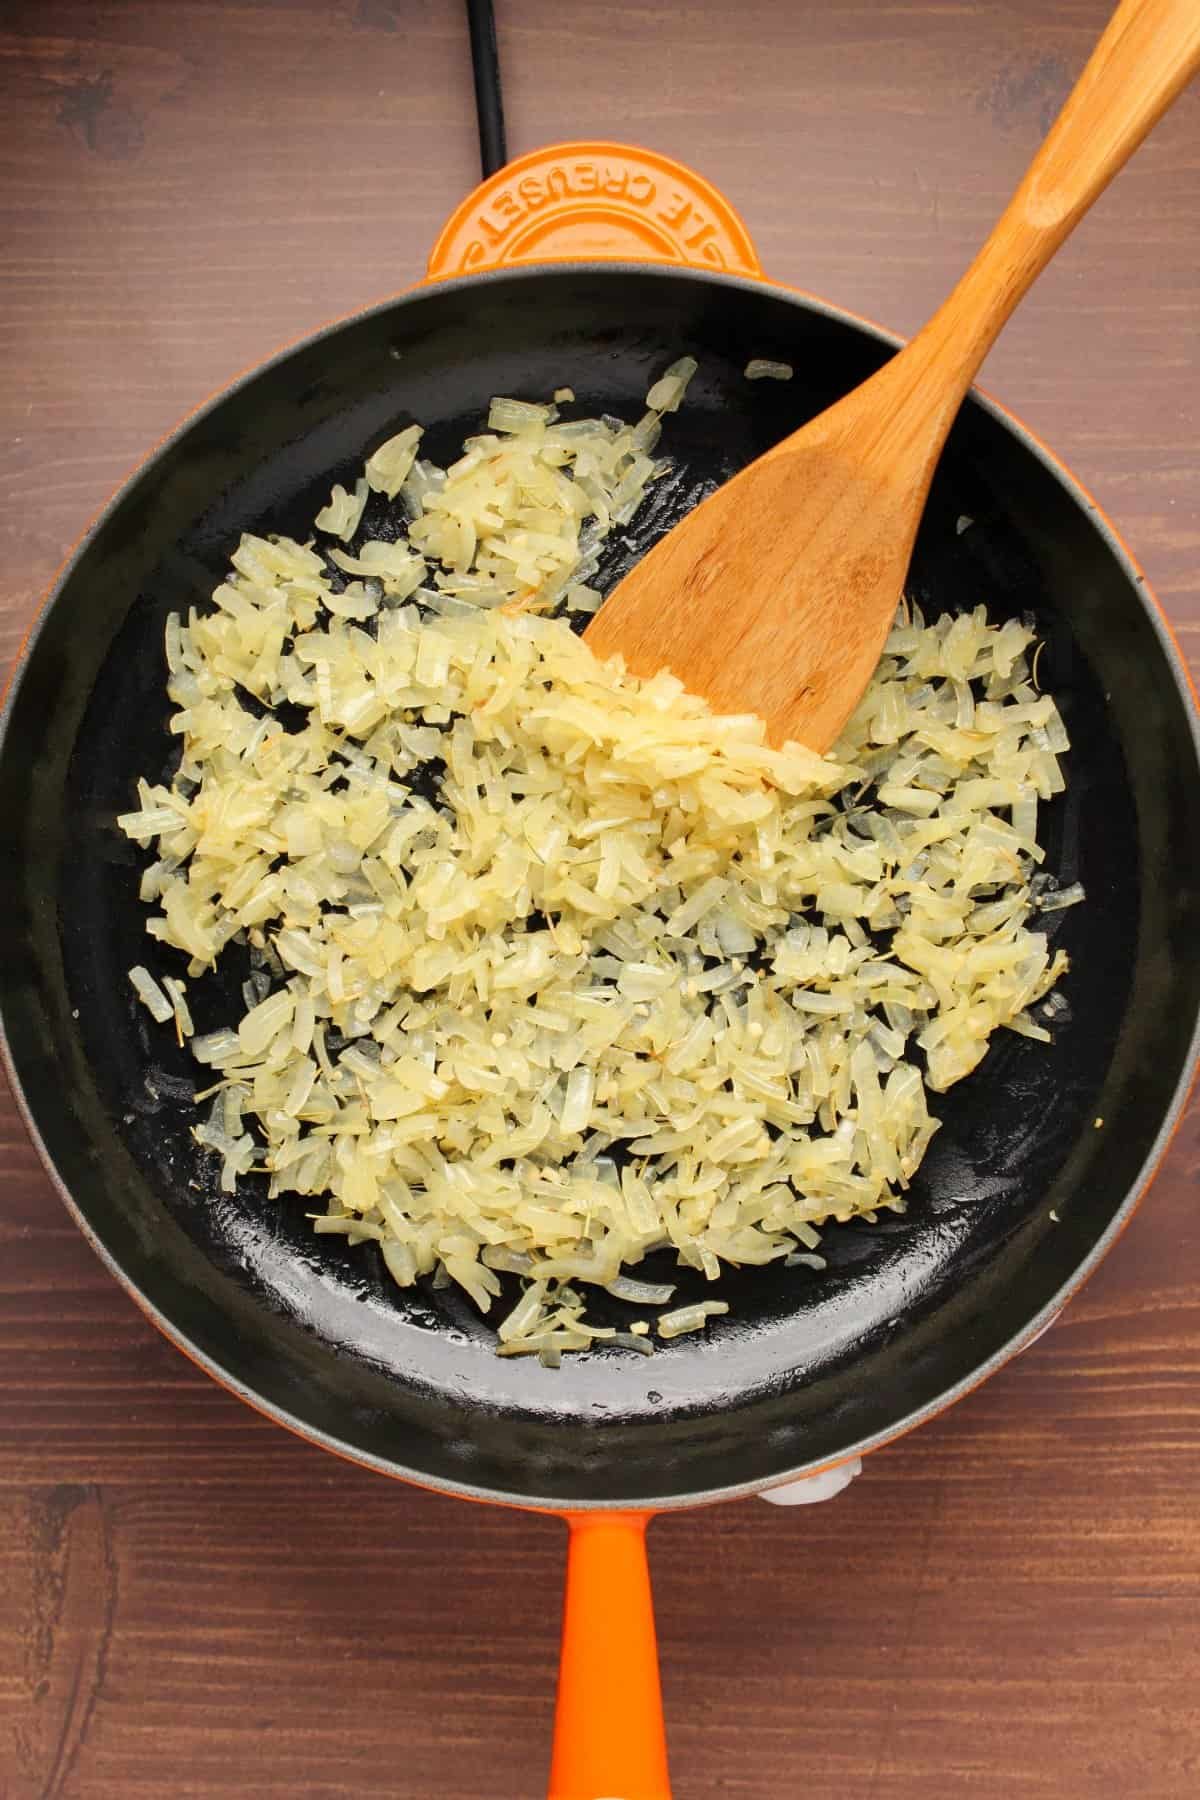 Sautéed onions in a frying pan with a wooden spatula.